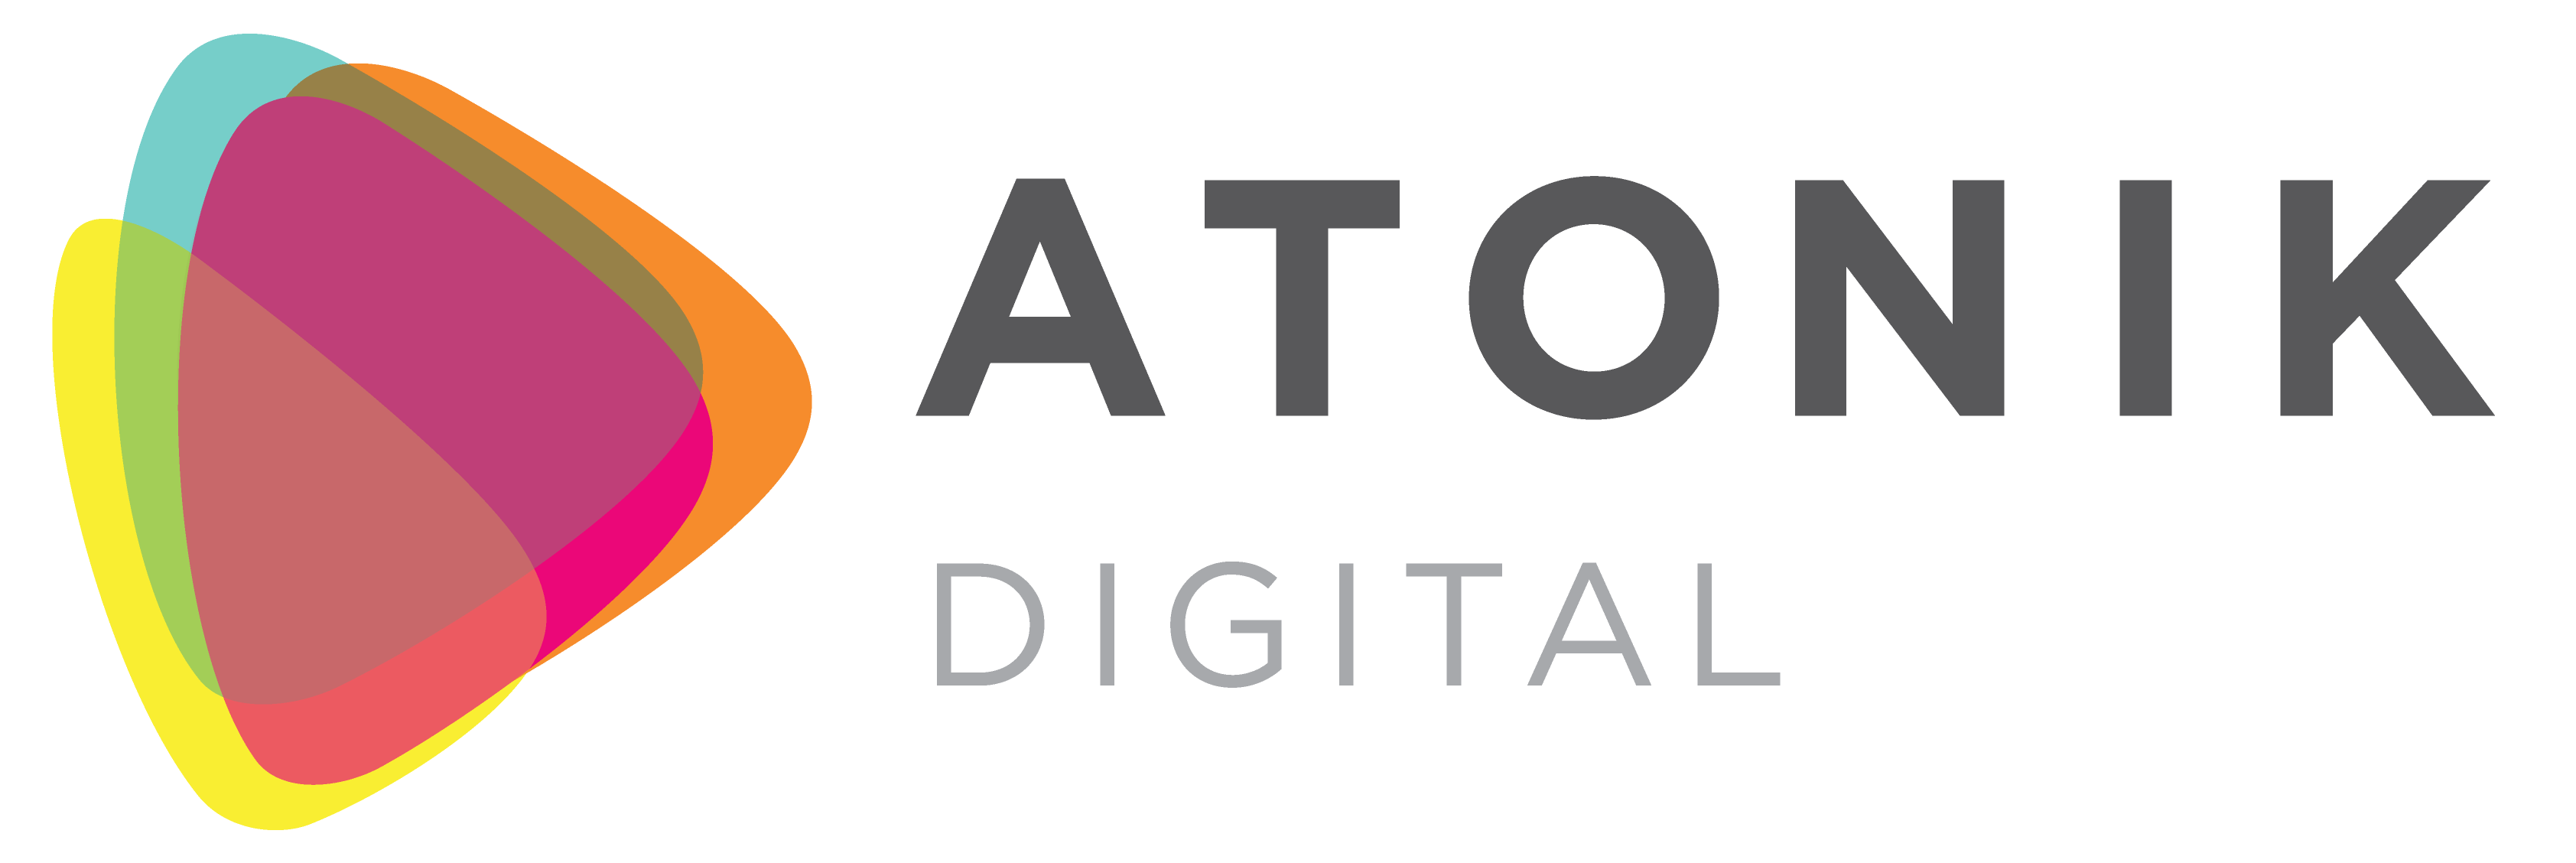 Atonik Digital